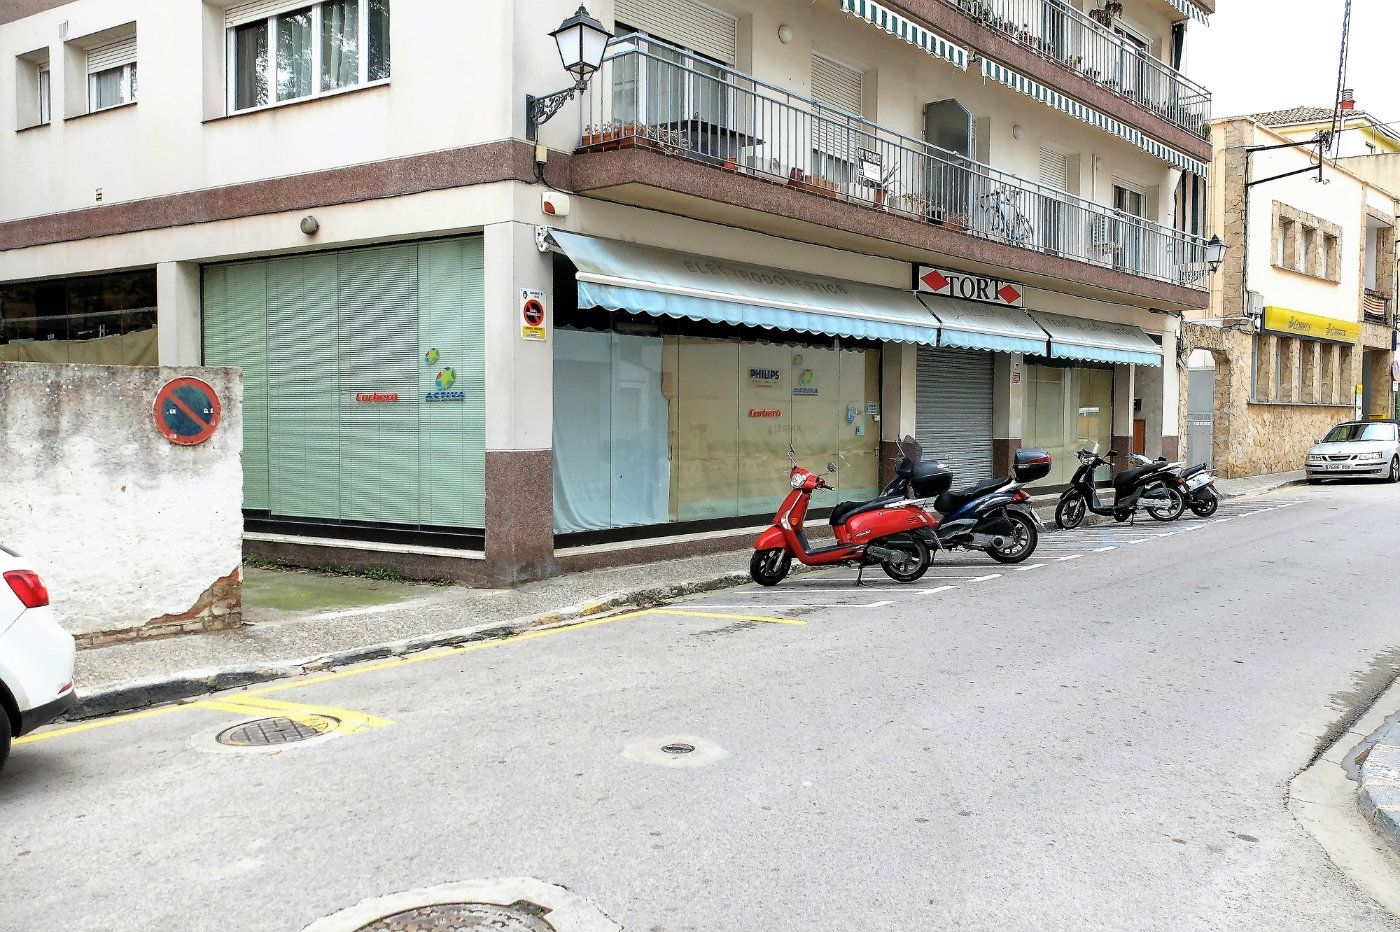 Local Comercial en Carrer maria auxiliadora, 6. Gran local en venta